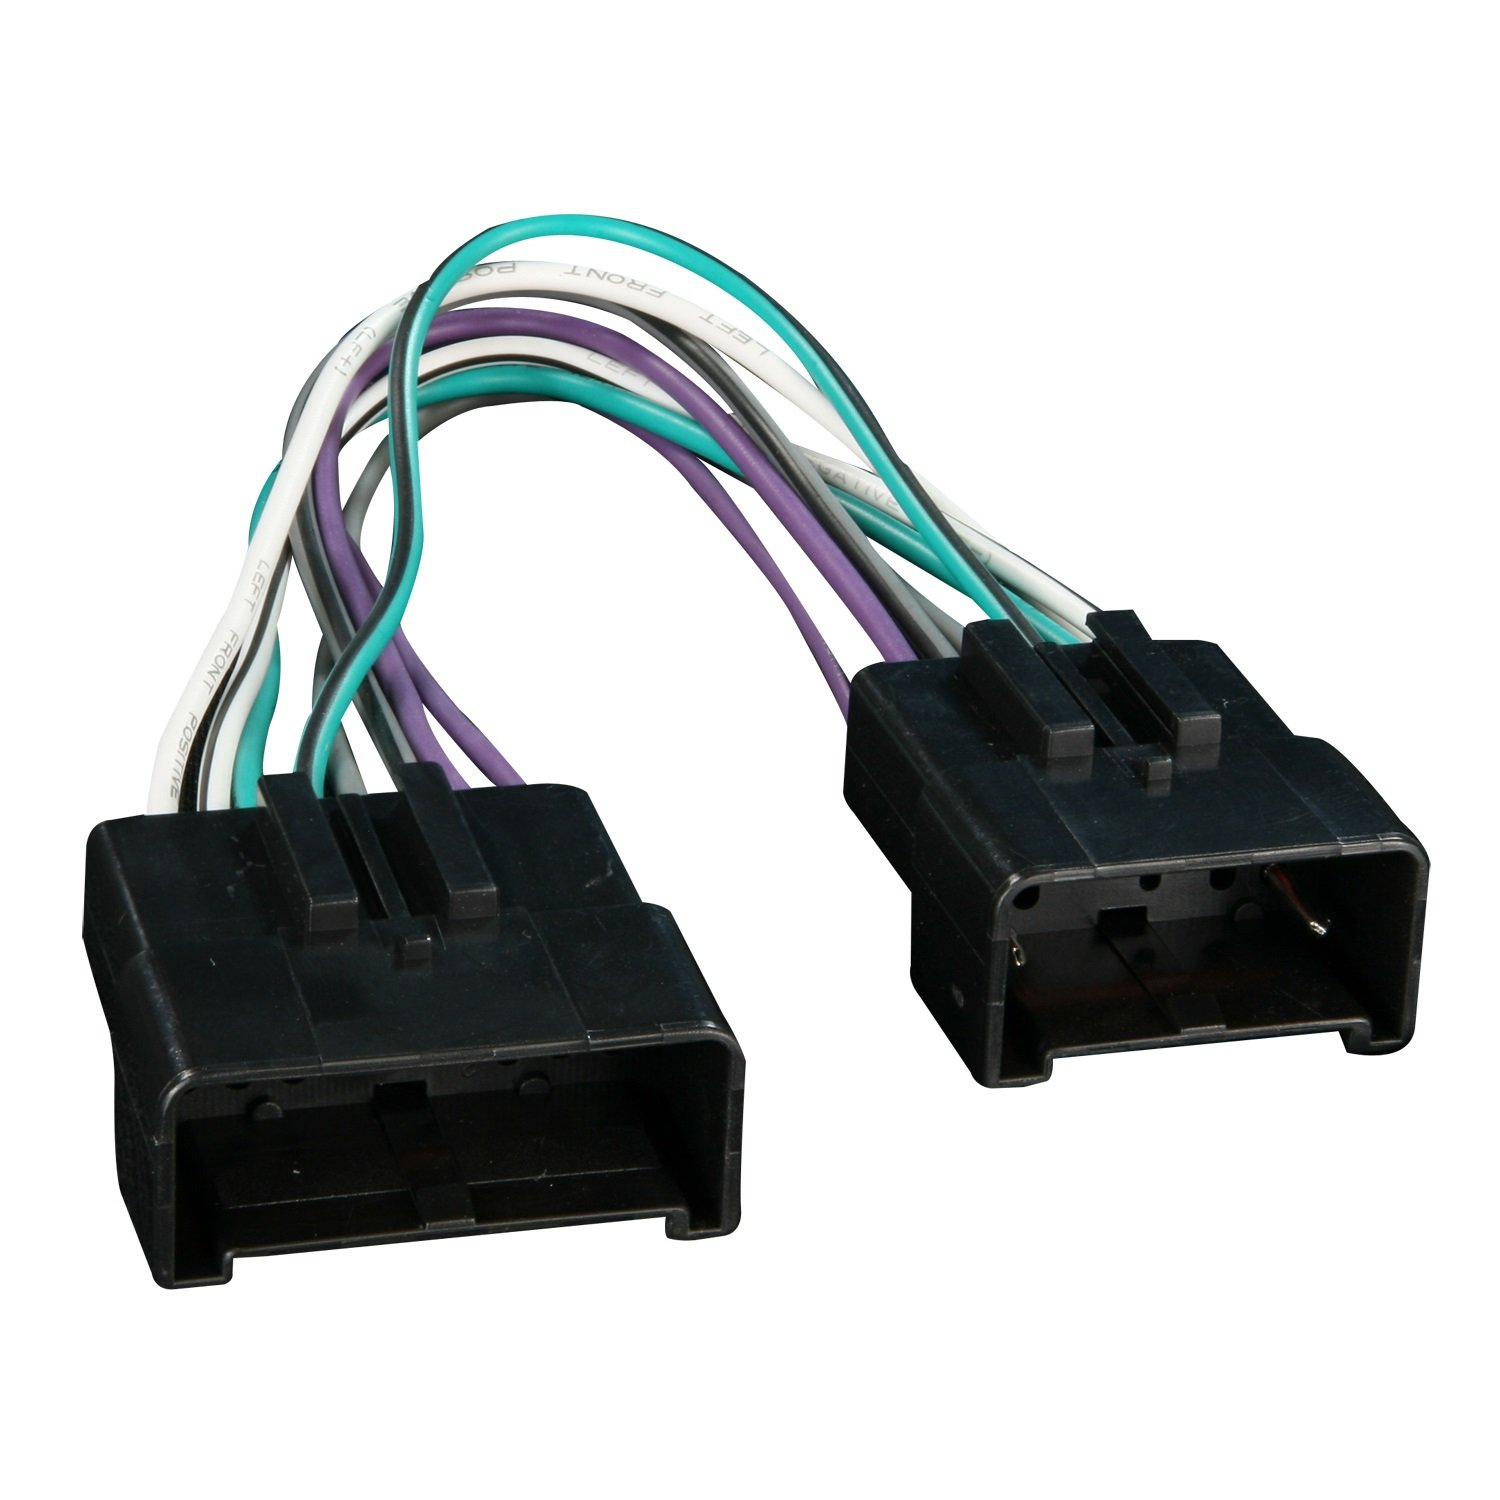 71pSHbvTl0L._SL1500_ amazon com metra 70 5513 radio wiring harness for ford amplifier Dash Kit for F150 at bakdesigns.co